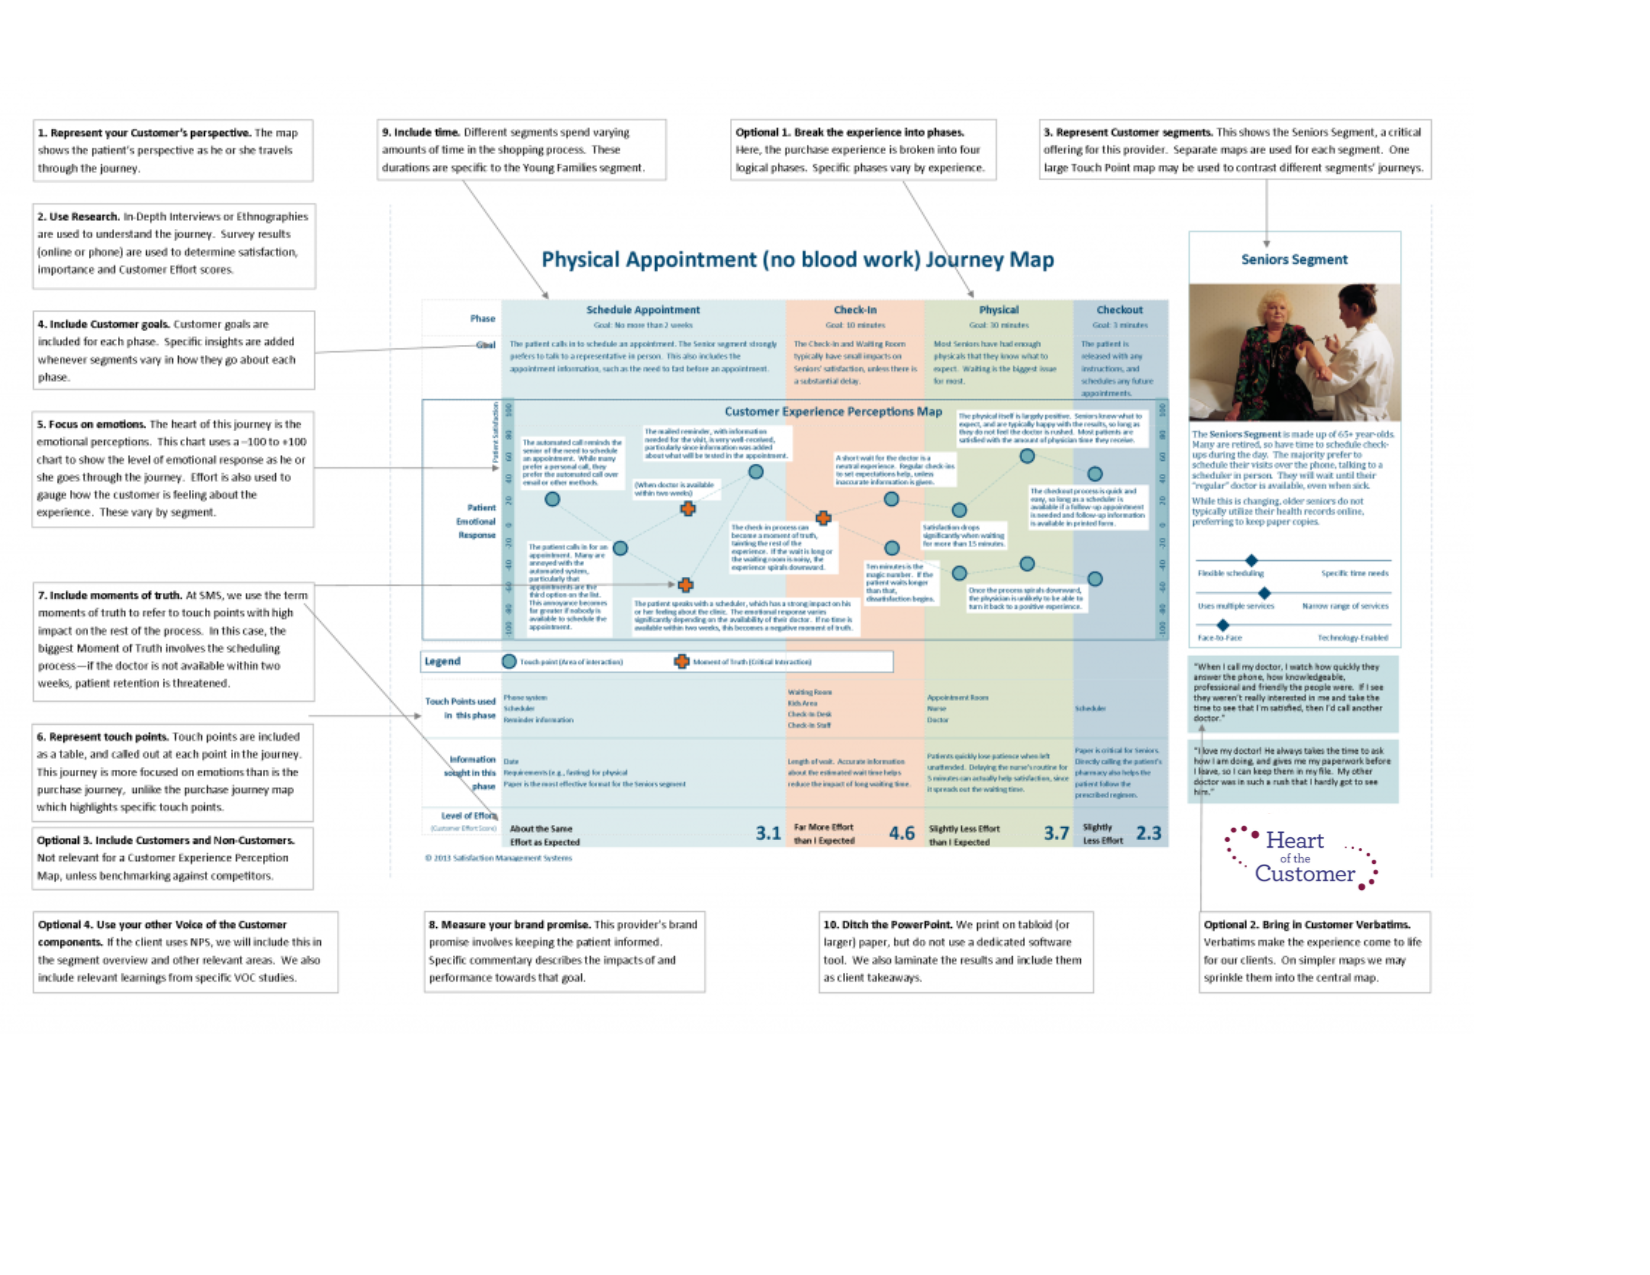 Customer Experience Journey Map Applying The Top Requirements - Customer journey map touchpoints